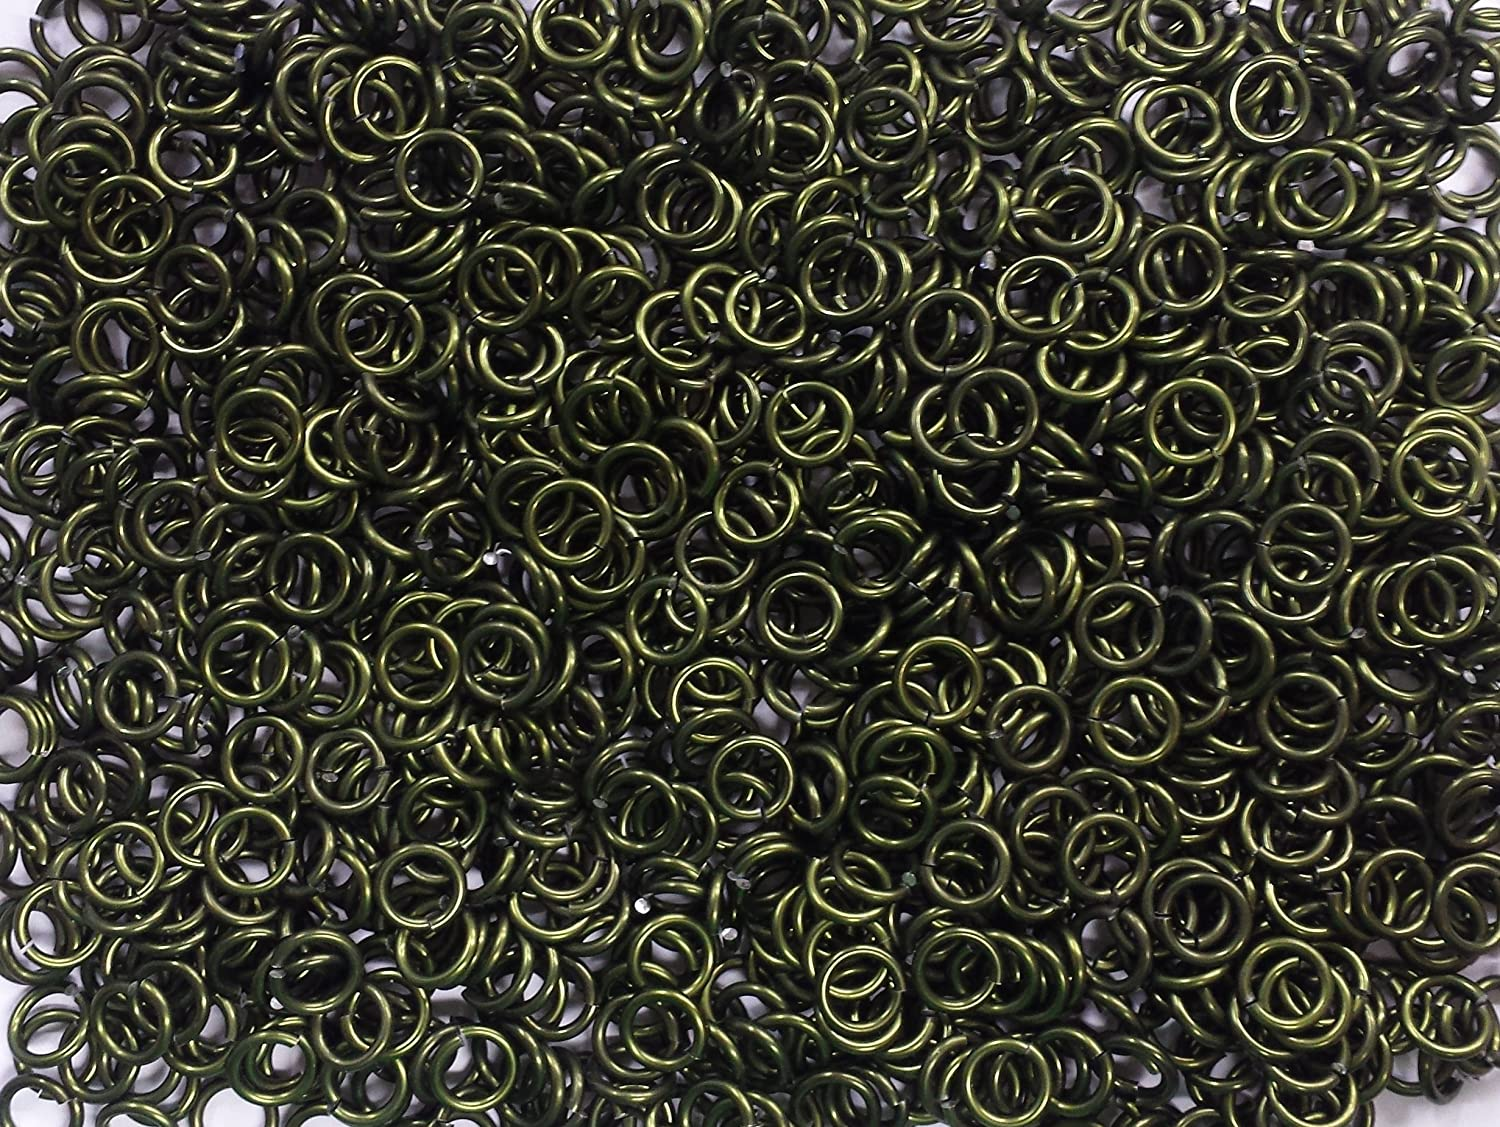 1800+ Rings! 1//2 Pound Kelly Green Anodized Aluminum Jump Rings 16G 1//4 ID